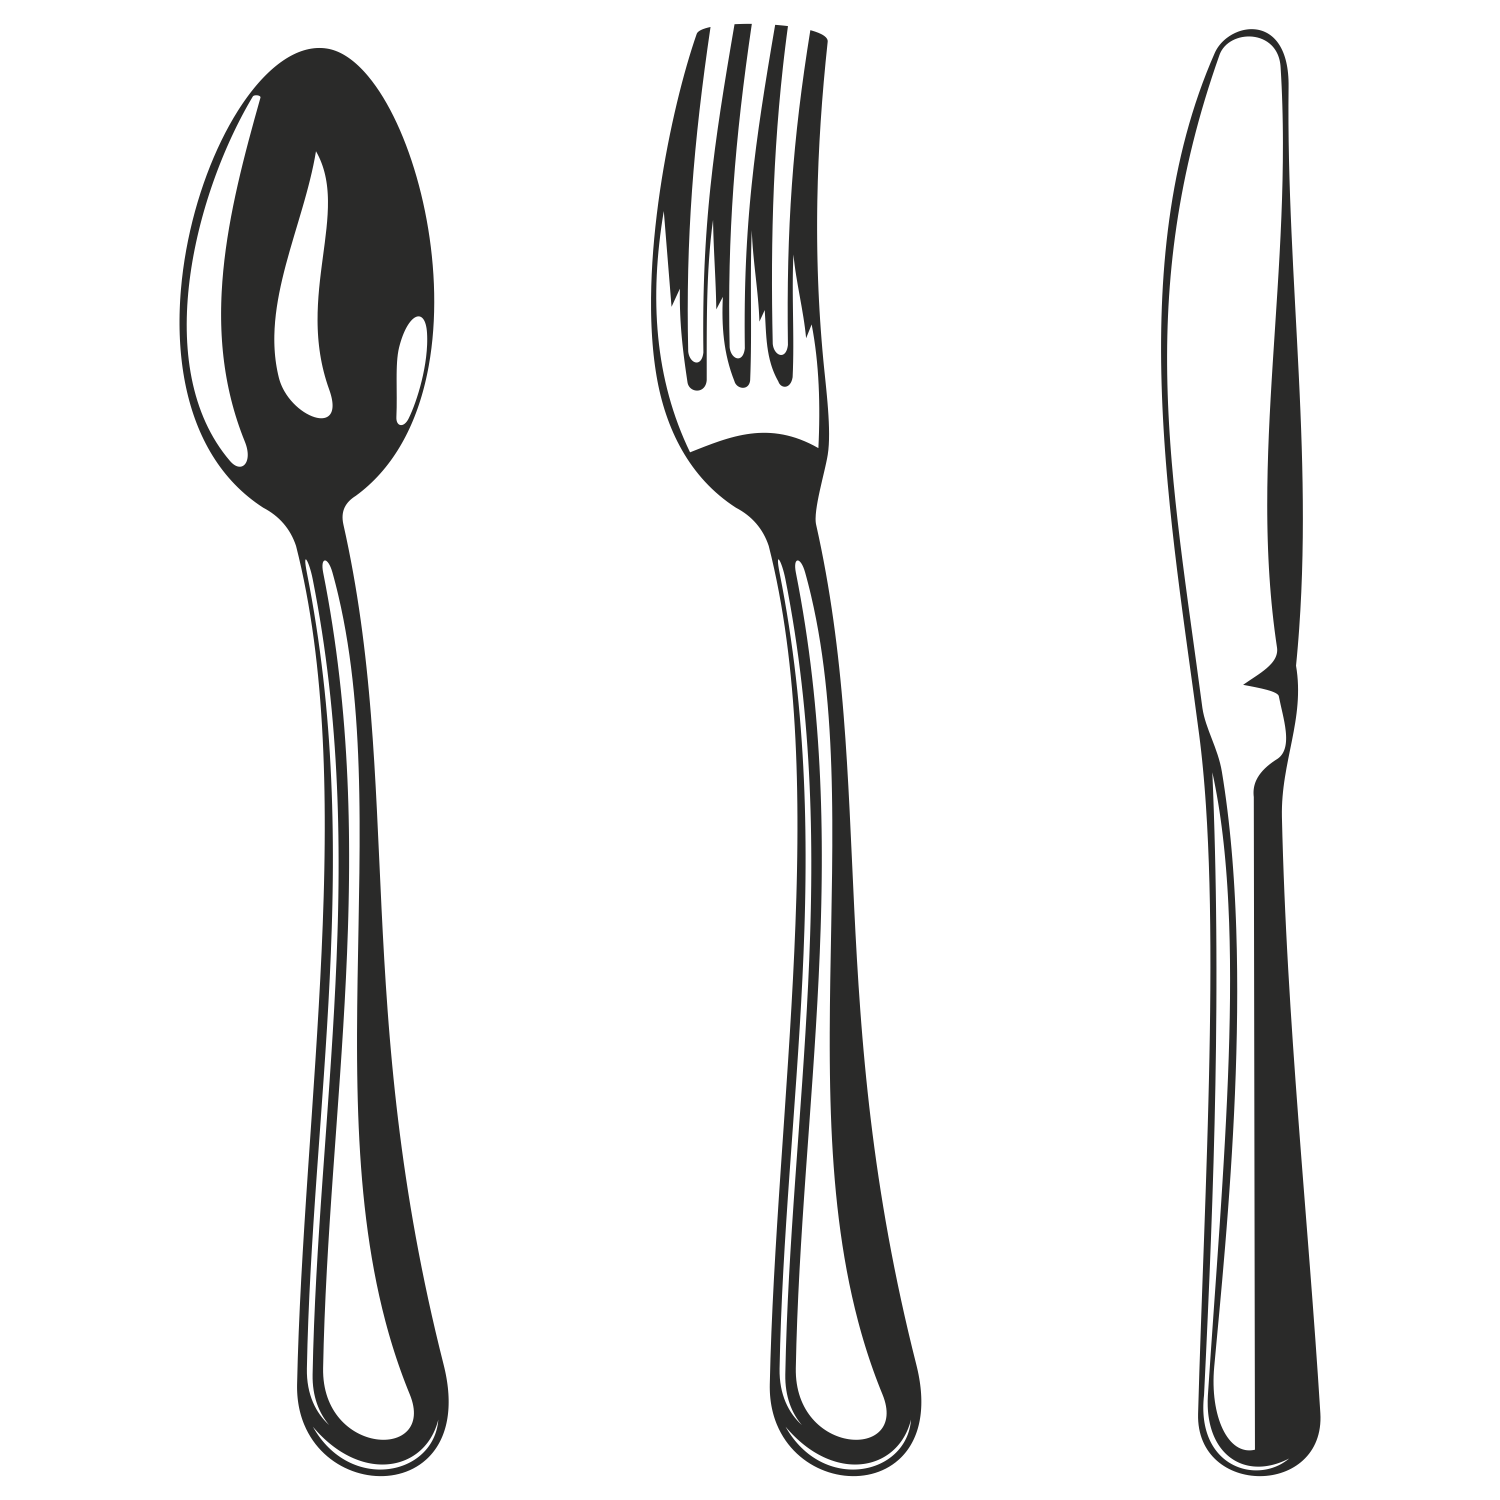 Fork clipart metal spoon Knife chadholtz Savoronmorehead And art